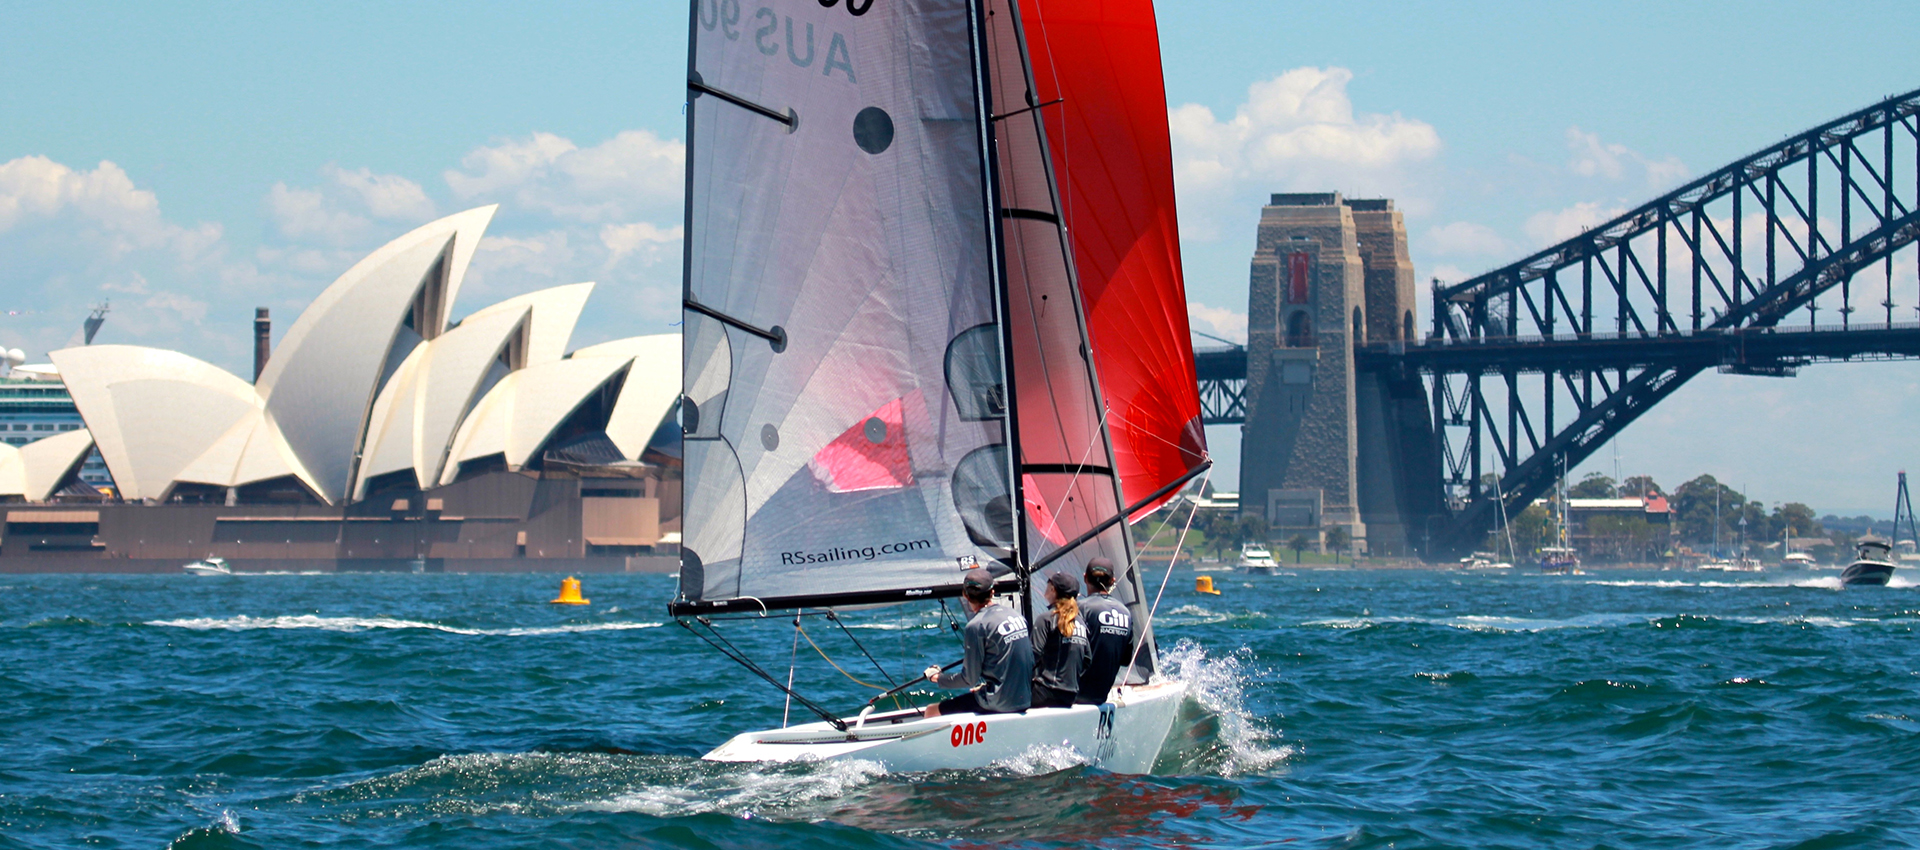 RS Elite – beautiful and refined racing keelboat for men and women across the age range